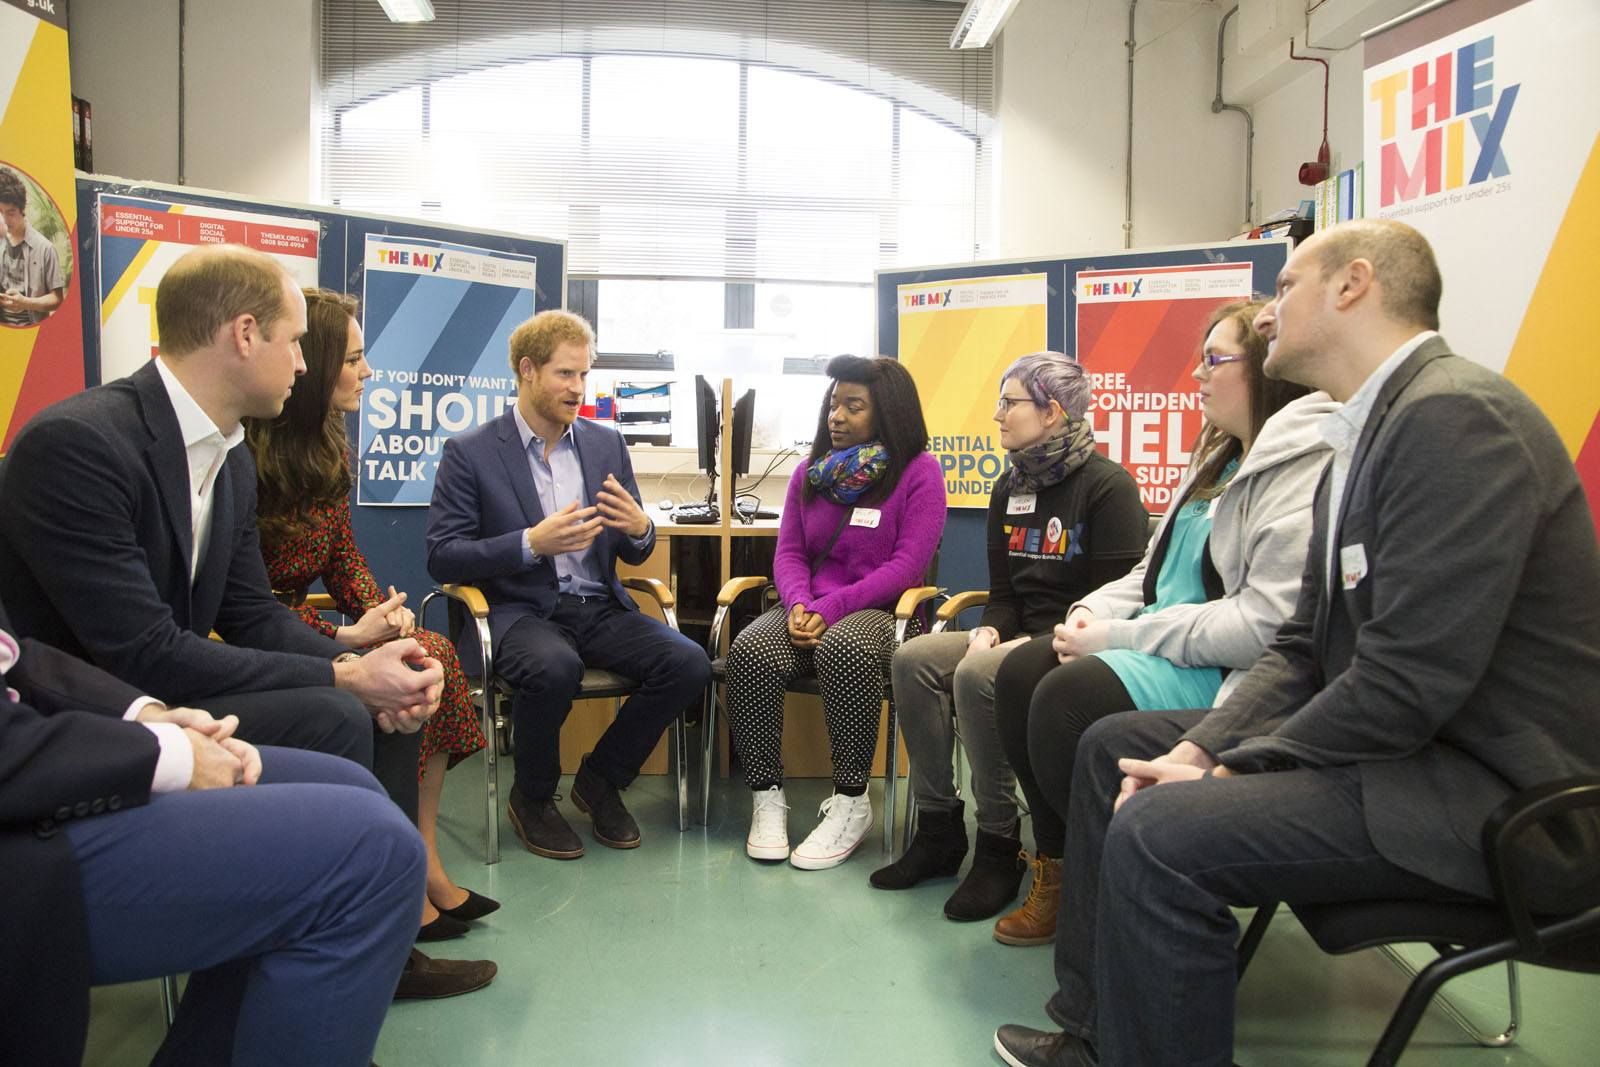 TRH The Duke and Duchess of Cambridge and Price Harry sit down to talk to members of The Mix's volunteer and staff team